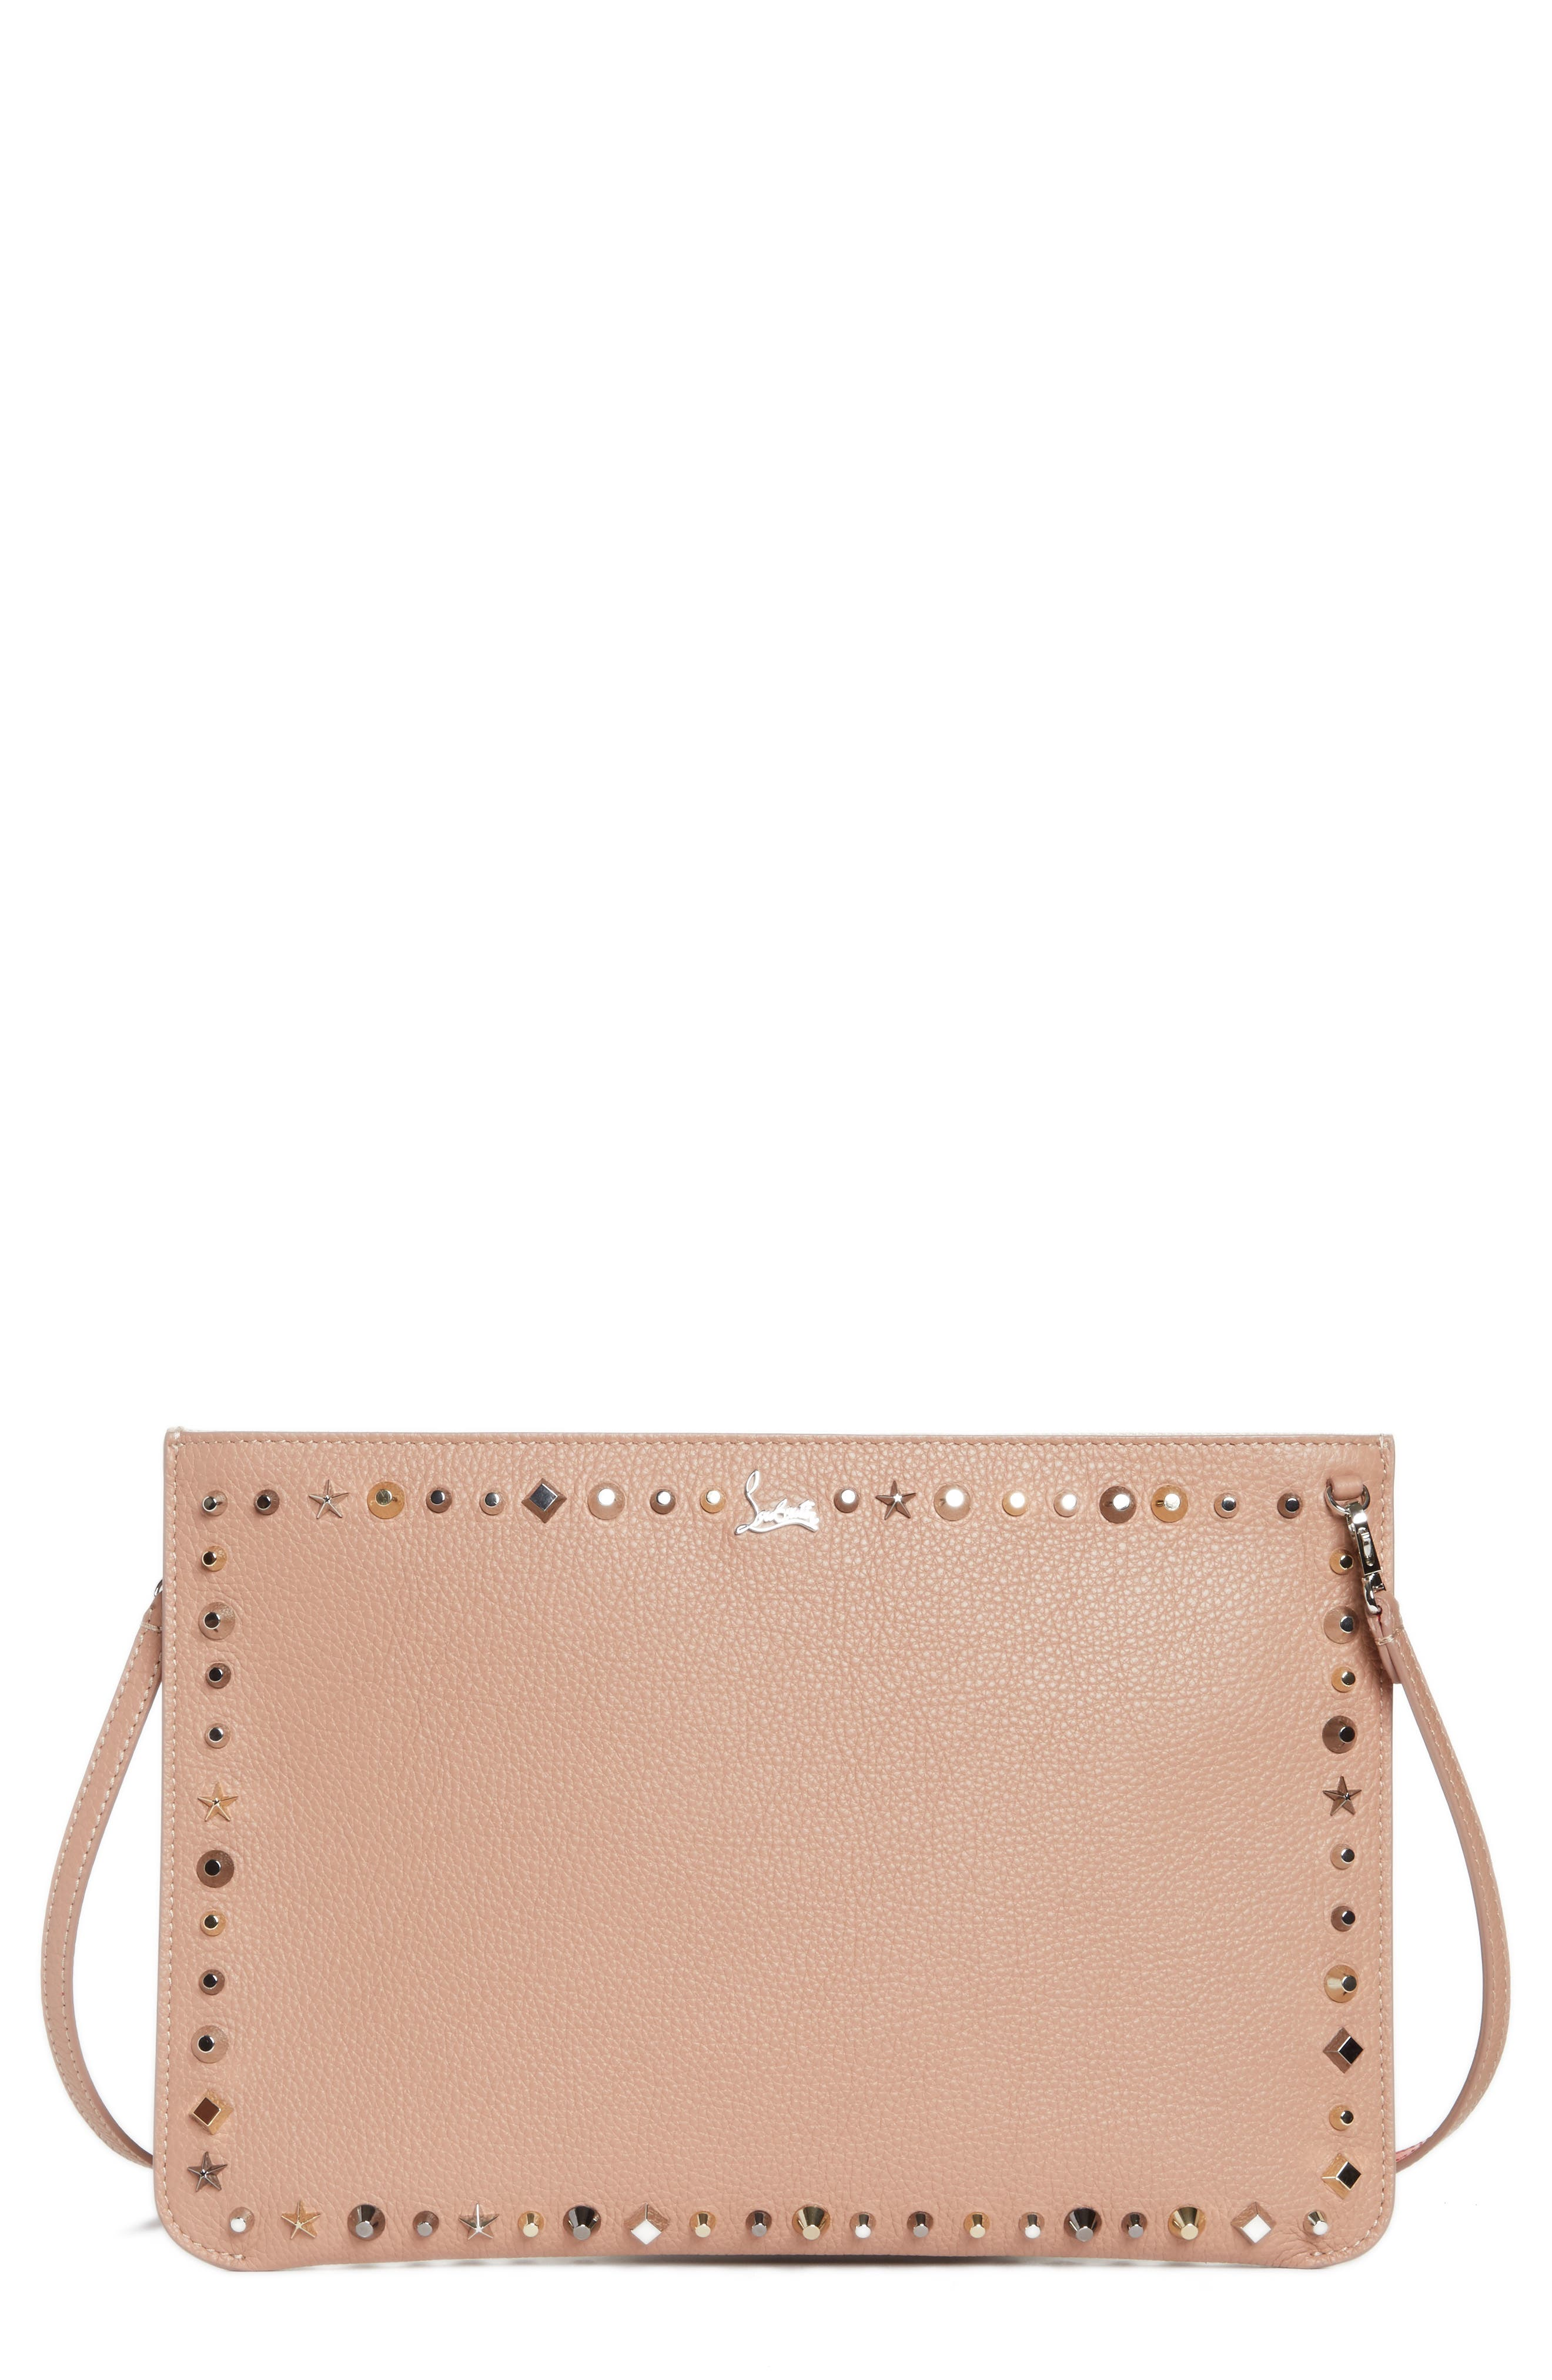 Loubiclutch Spiked Leather Clutch,                             Main thumbnail 1, color,                             Nude/ Multimetal